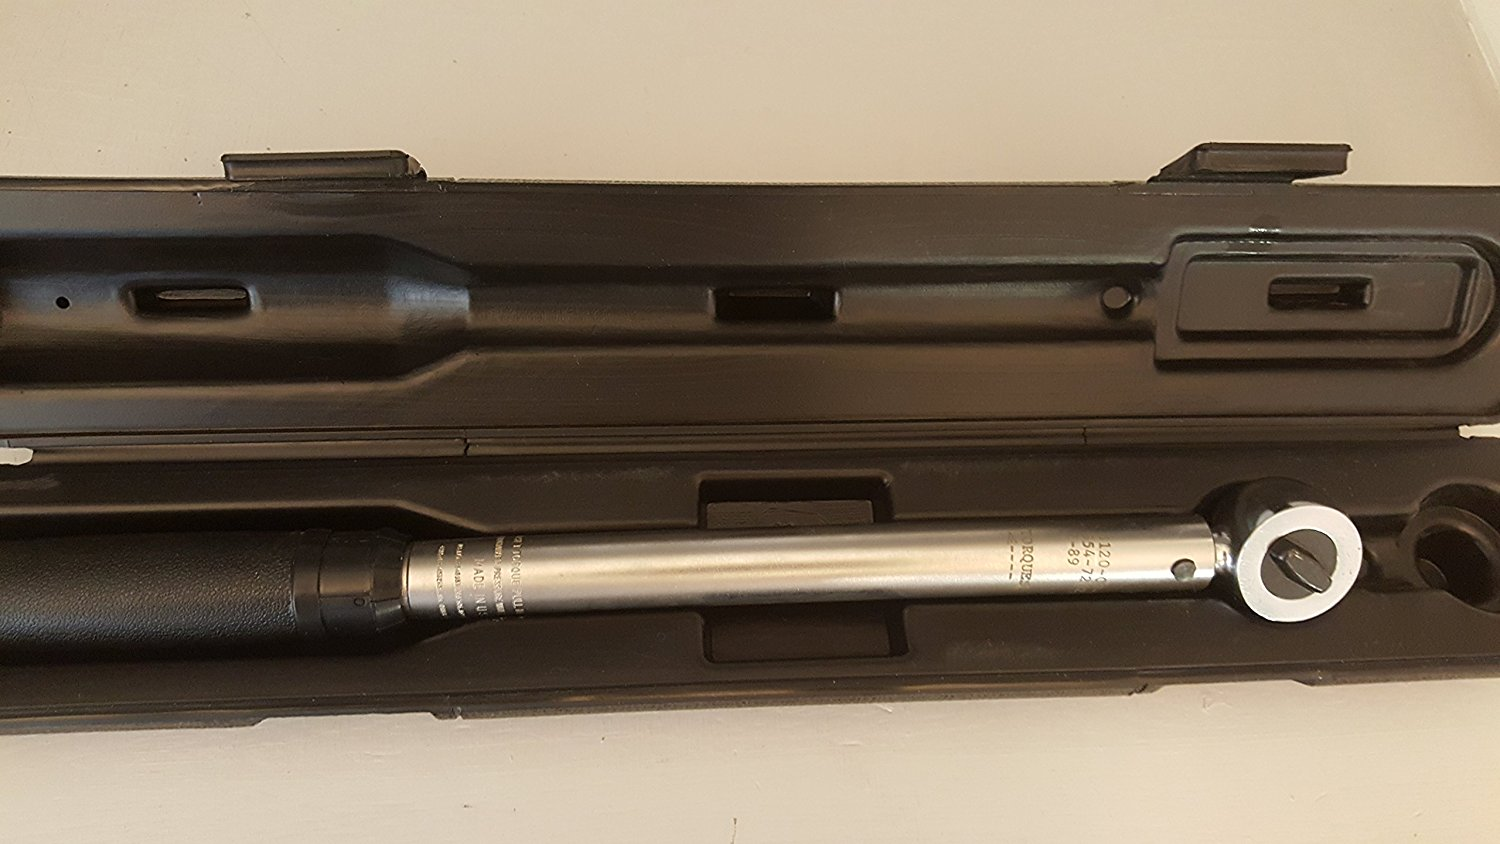 Micro Adjustable Torque Wrench, 3/8 inch, USA, CDI, 752MFR, 10-75 foot lbs.